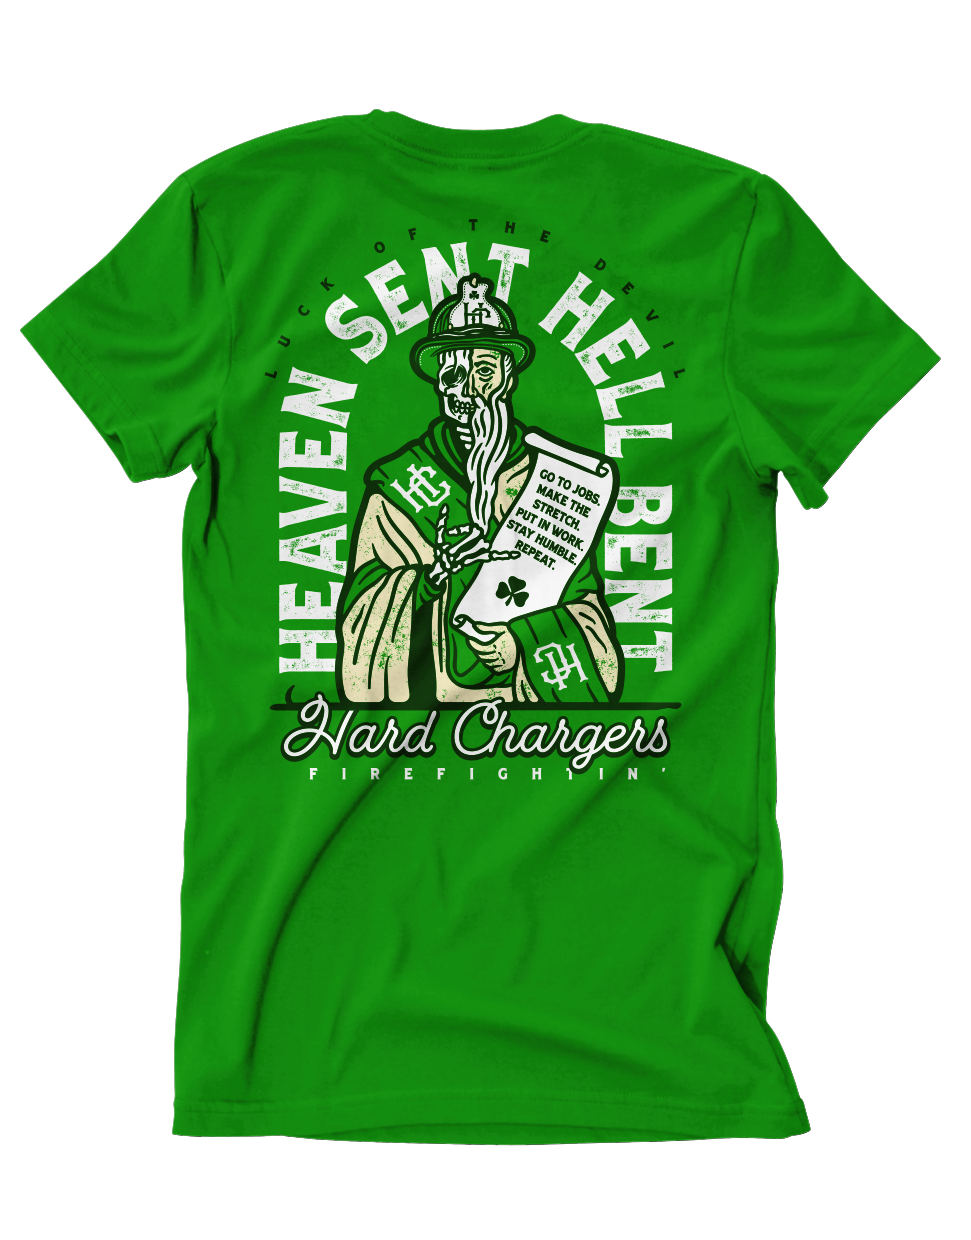 Hard Chargers St Patrick